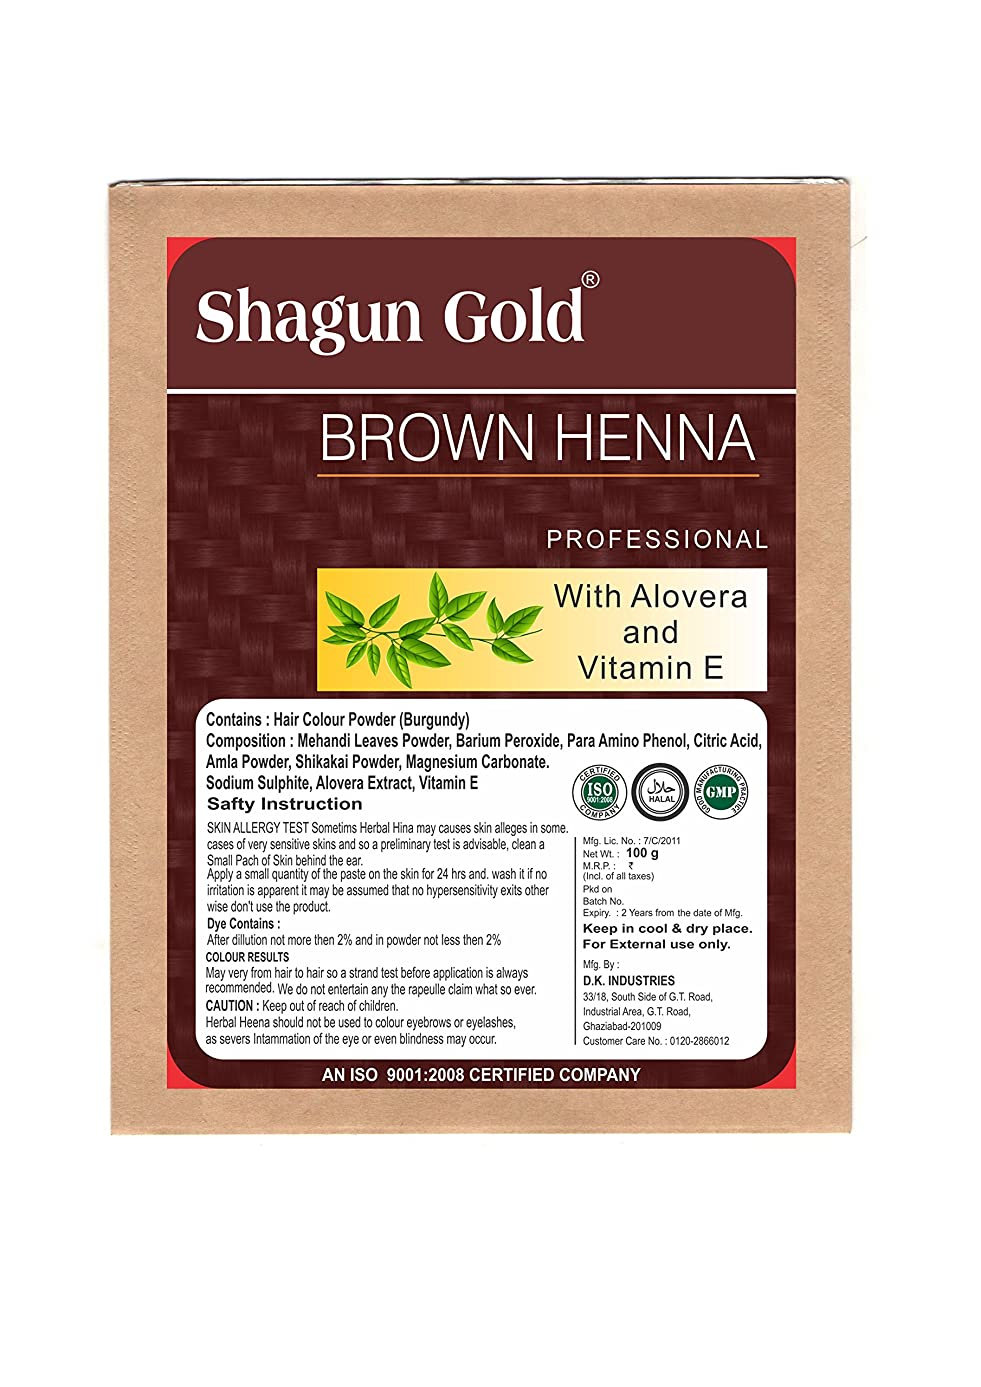 レーニン主義オーラルリクルートShagun Gold A 100% Natural Hair Color Brown Henna For Hair Certified By Gmp / Halal / ISO-9001-2015 Semi Permanent 7 Oz / ( 1 / 2 lb ) / 200g